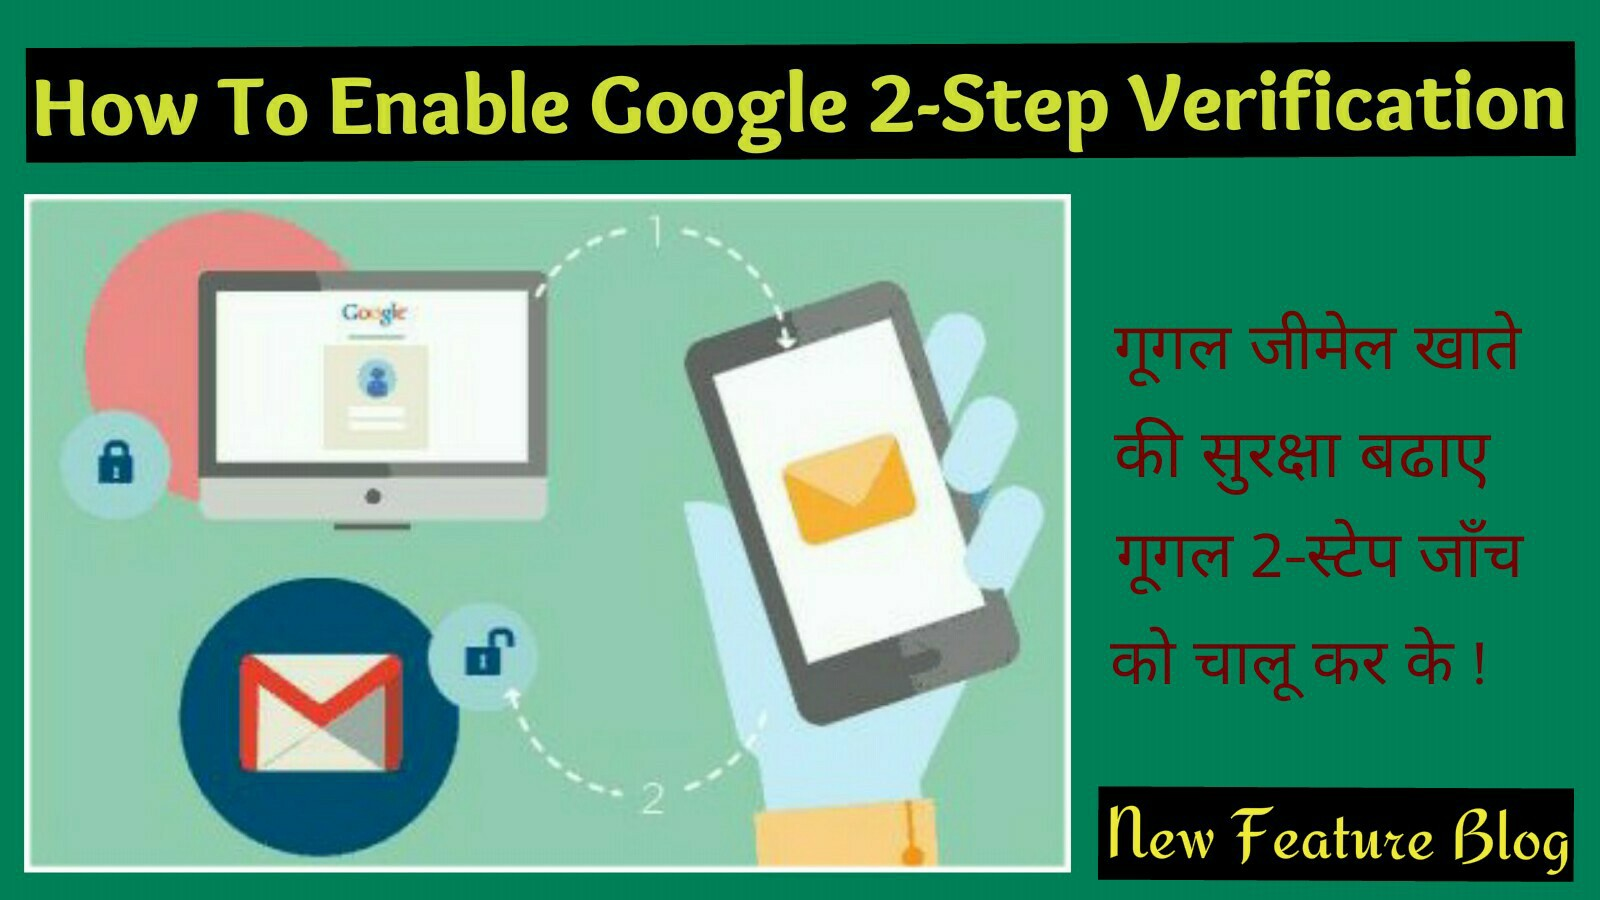 how to enable google gmail account 2 step verification for gmail security